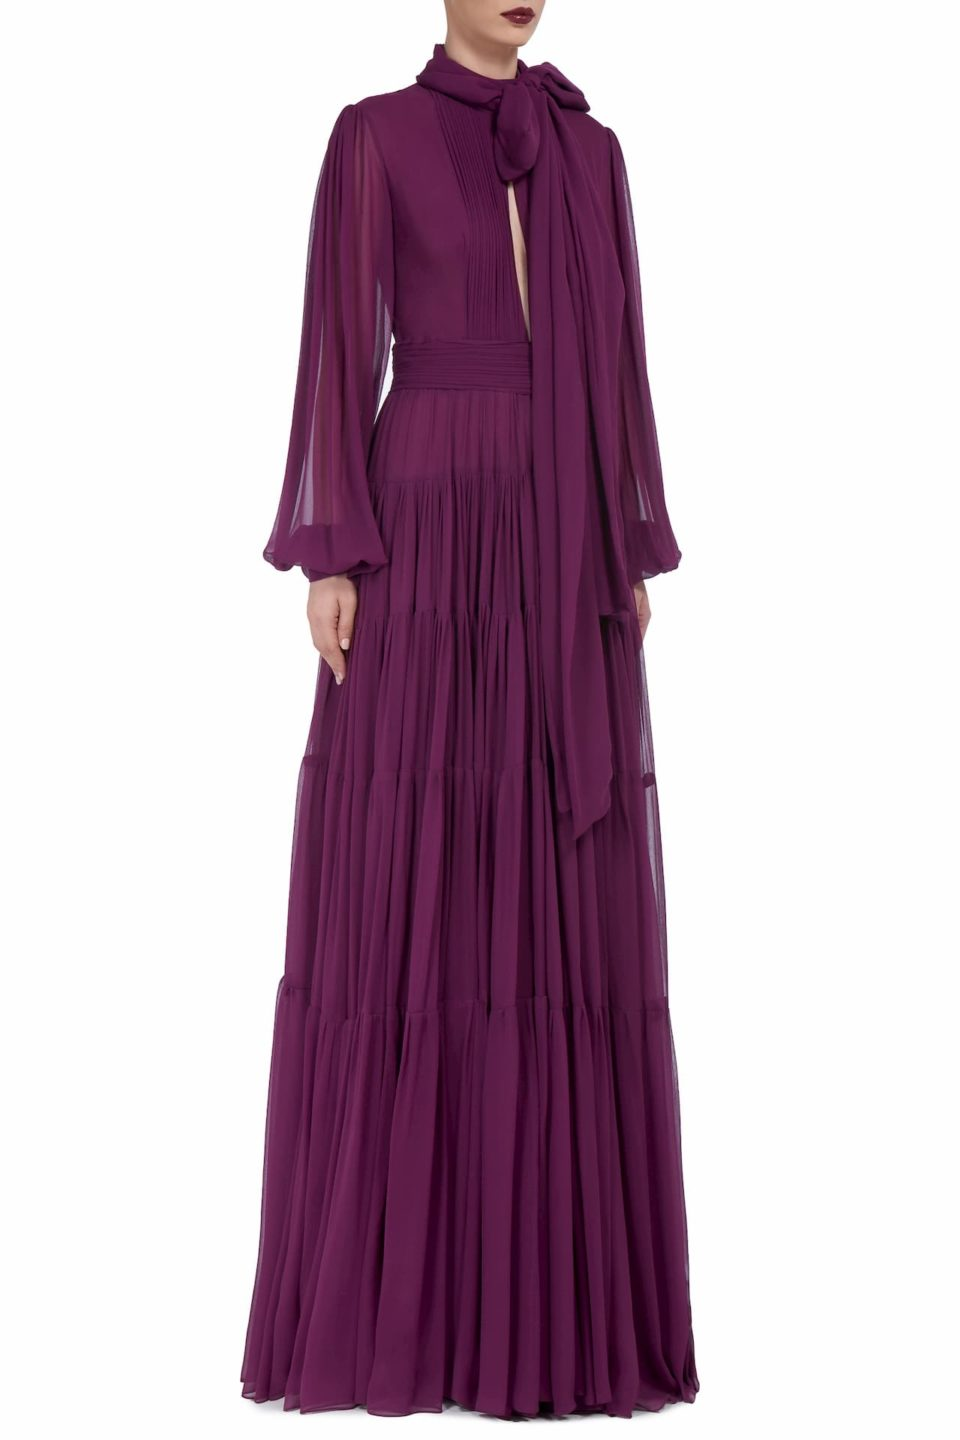 Isabelle FW2013 Purple Silk Chiffon Tiered Pussybow Gown with Keyhole Neckline & Pleated Details